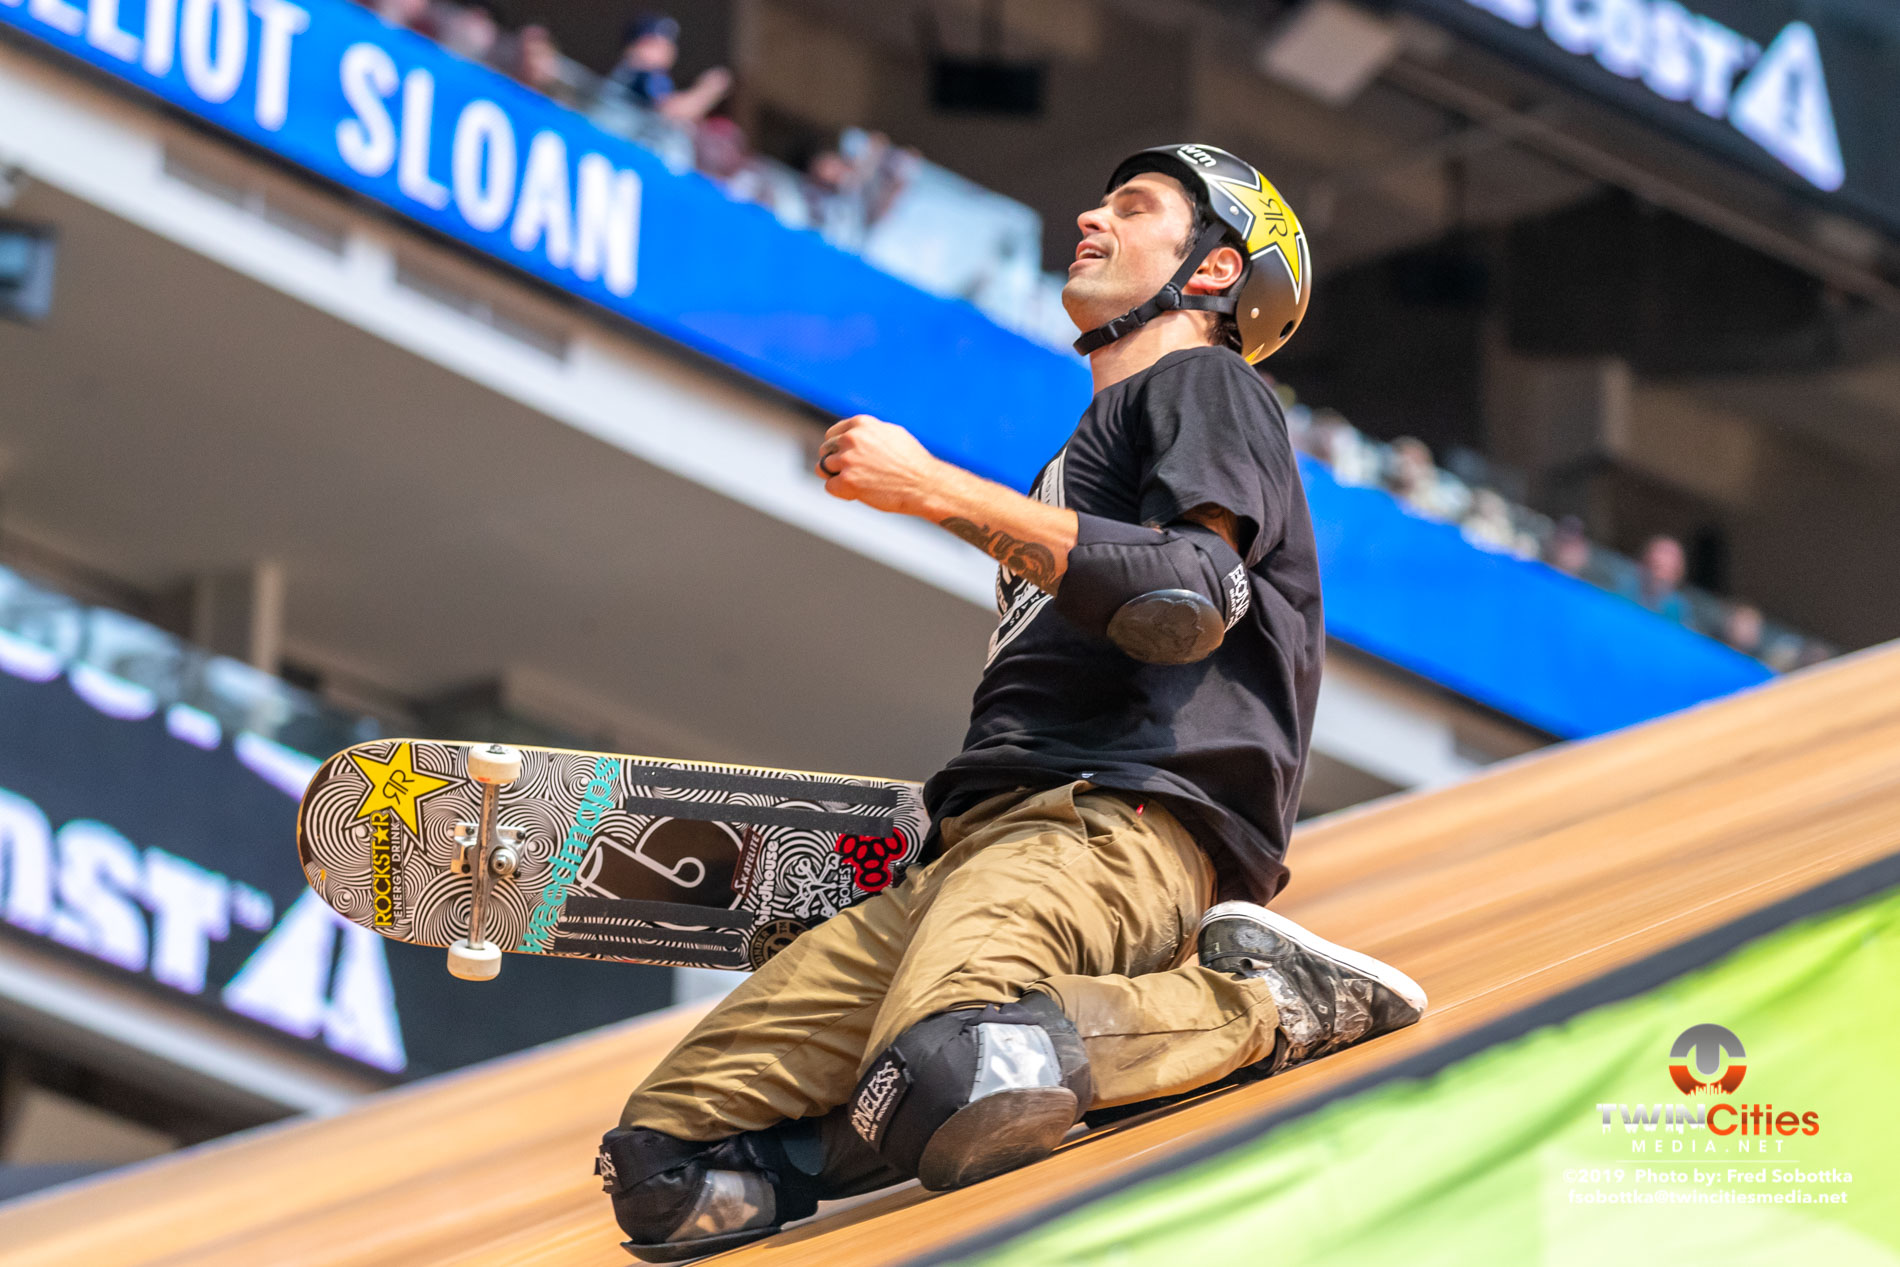 The-Real-Cost-Skateboard-Big-Air-14